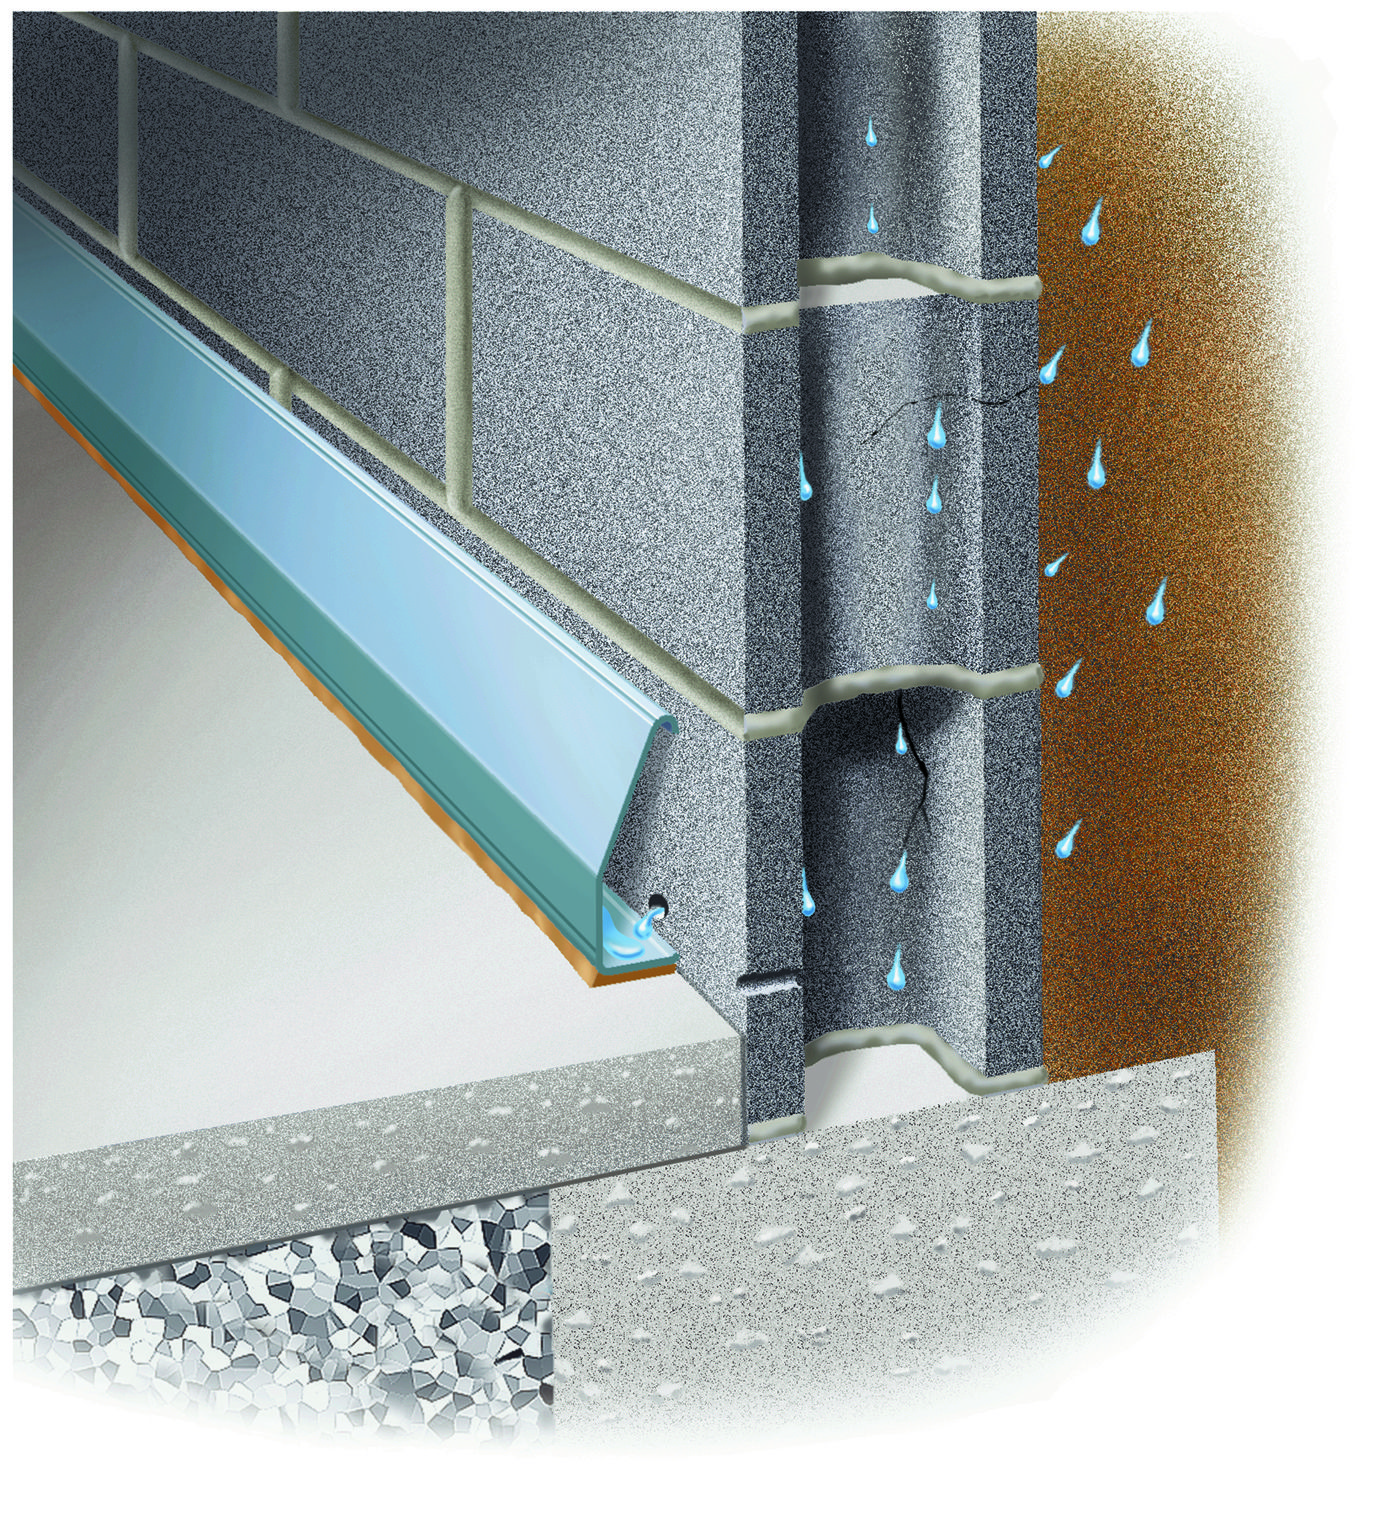 Basement Waterproofing Products For Diy Homeowners And Pro Foundation Systems For Contractors Since 1965 We Waterproofing Basement Diy Basement Basement Walls